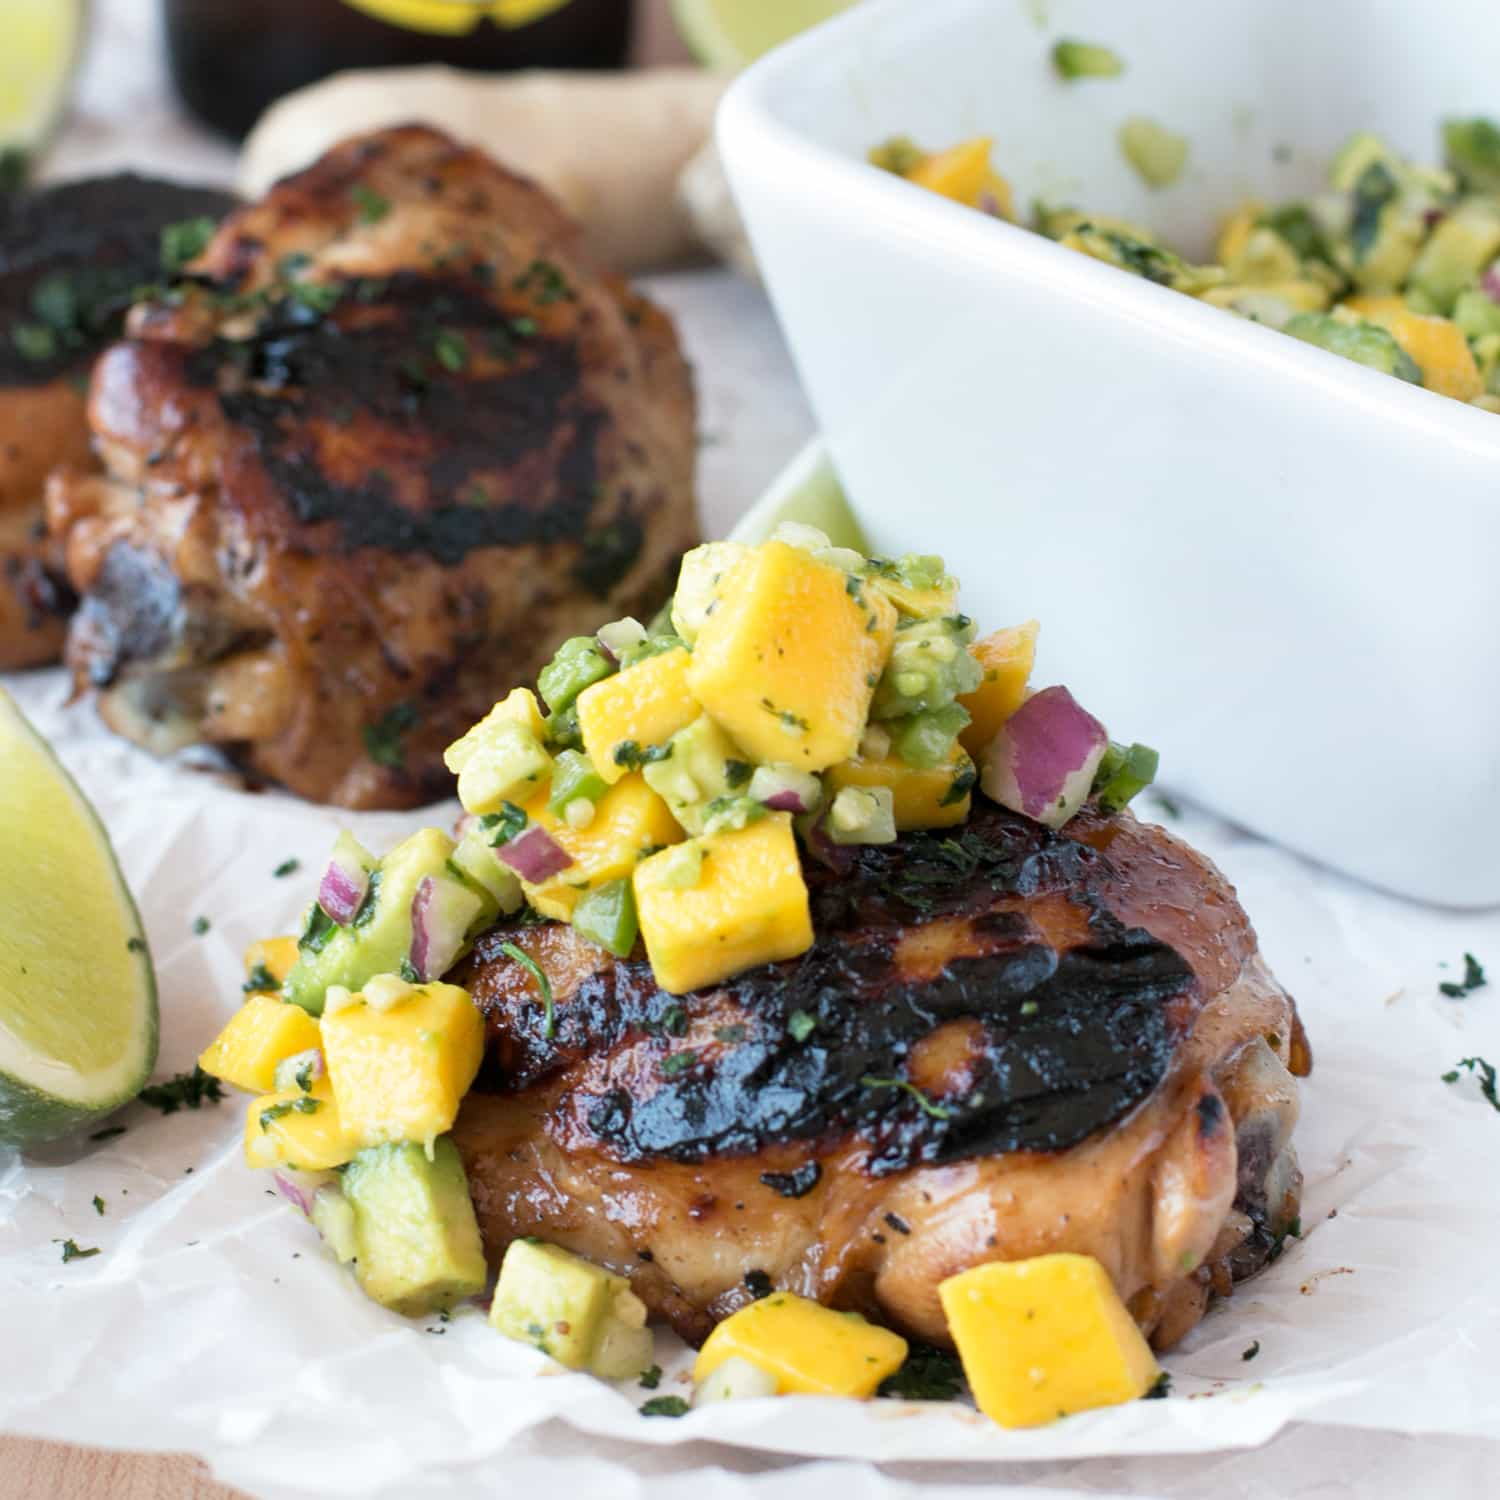 Spicy Ginger Grilled Chicken Thighs with Avocado Salsa